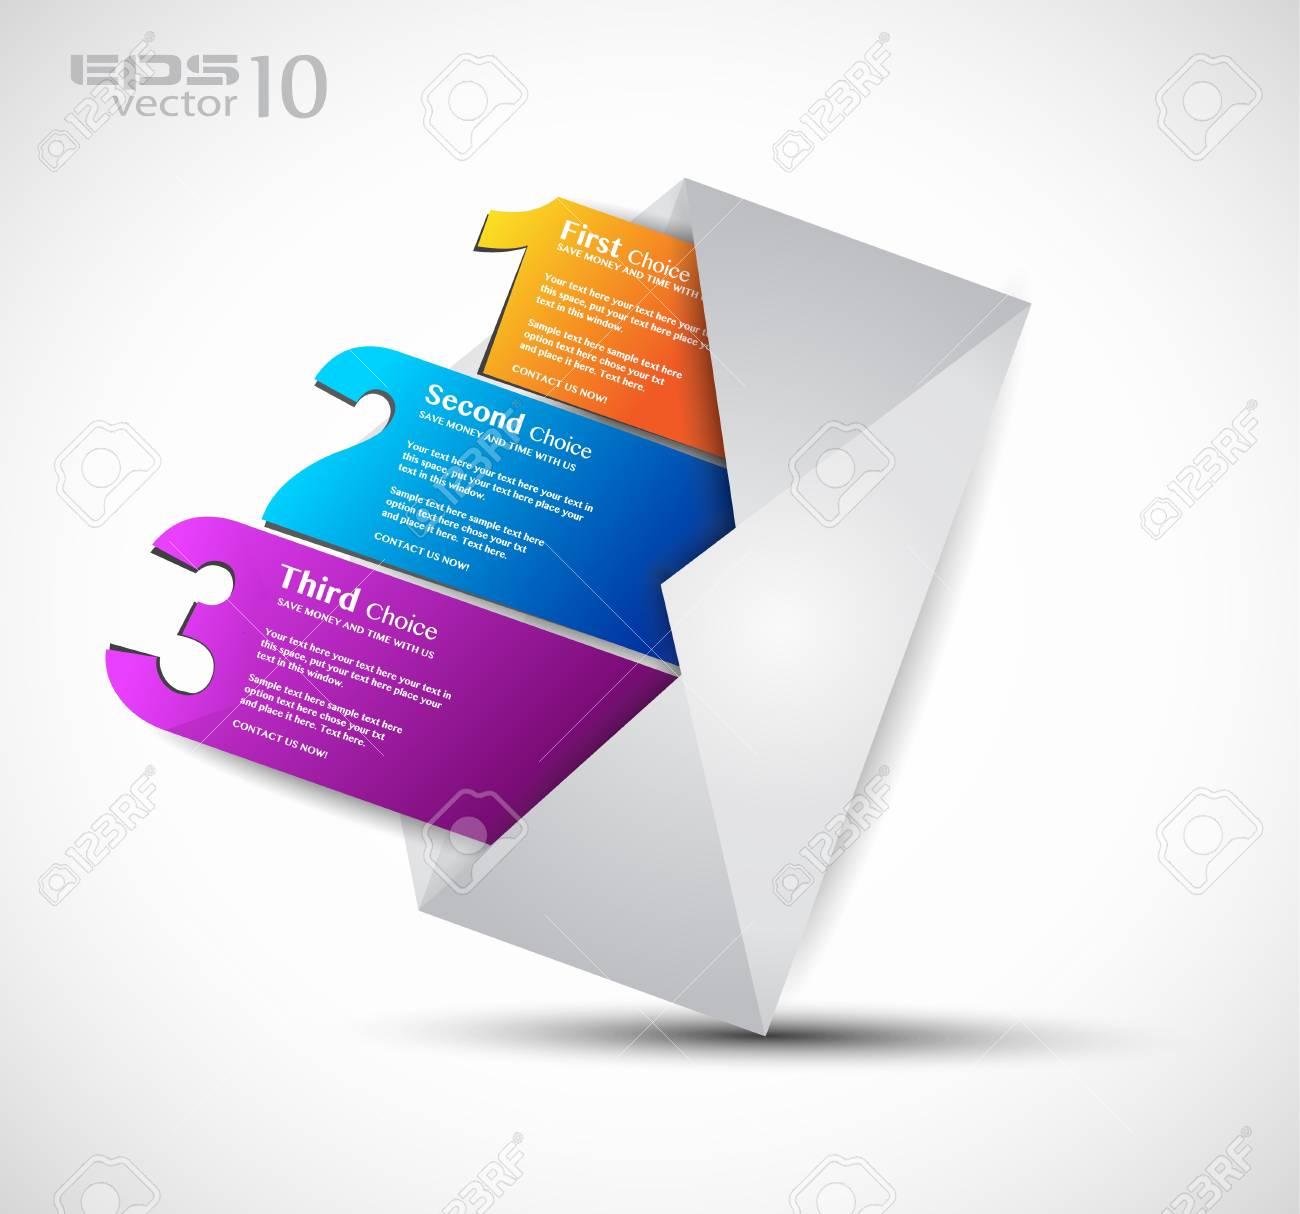 Postcard  menù with 3 choices. Ideal for web usage, depliant for product comparison or business presentation. Stock Photo - 14719520